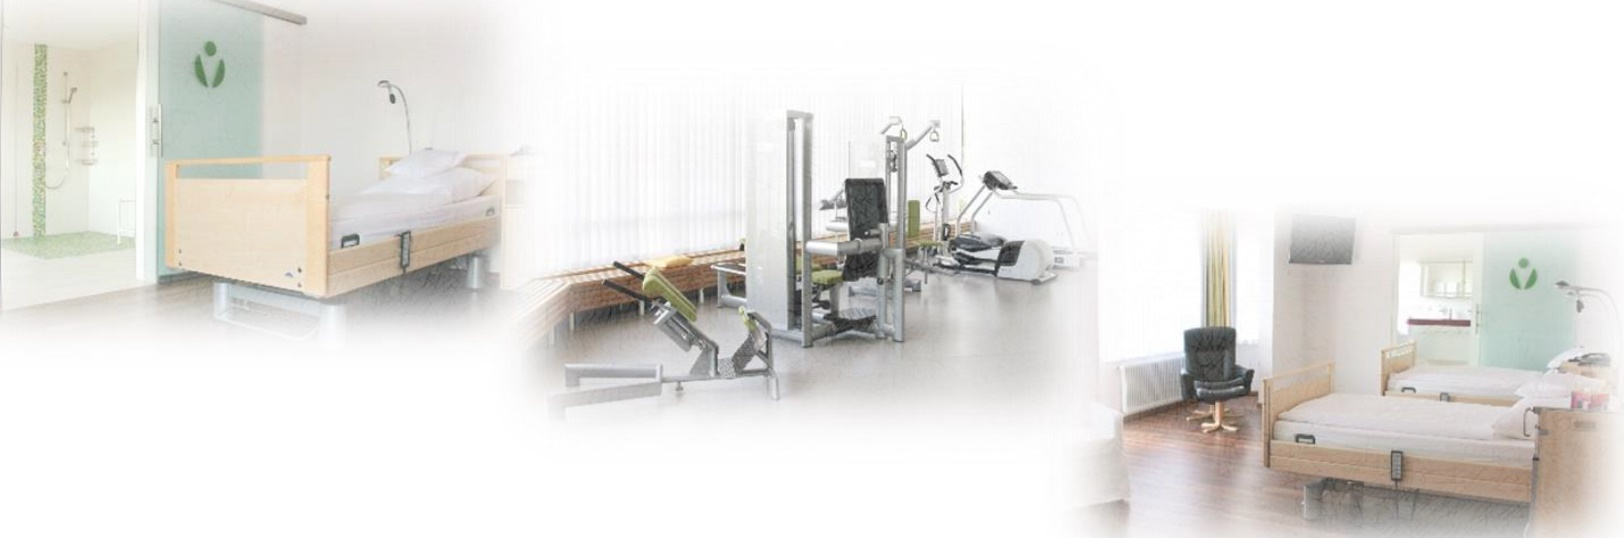 Hallwang Clinic Rooms and fitness area